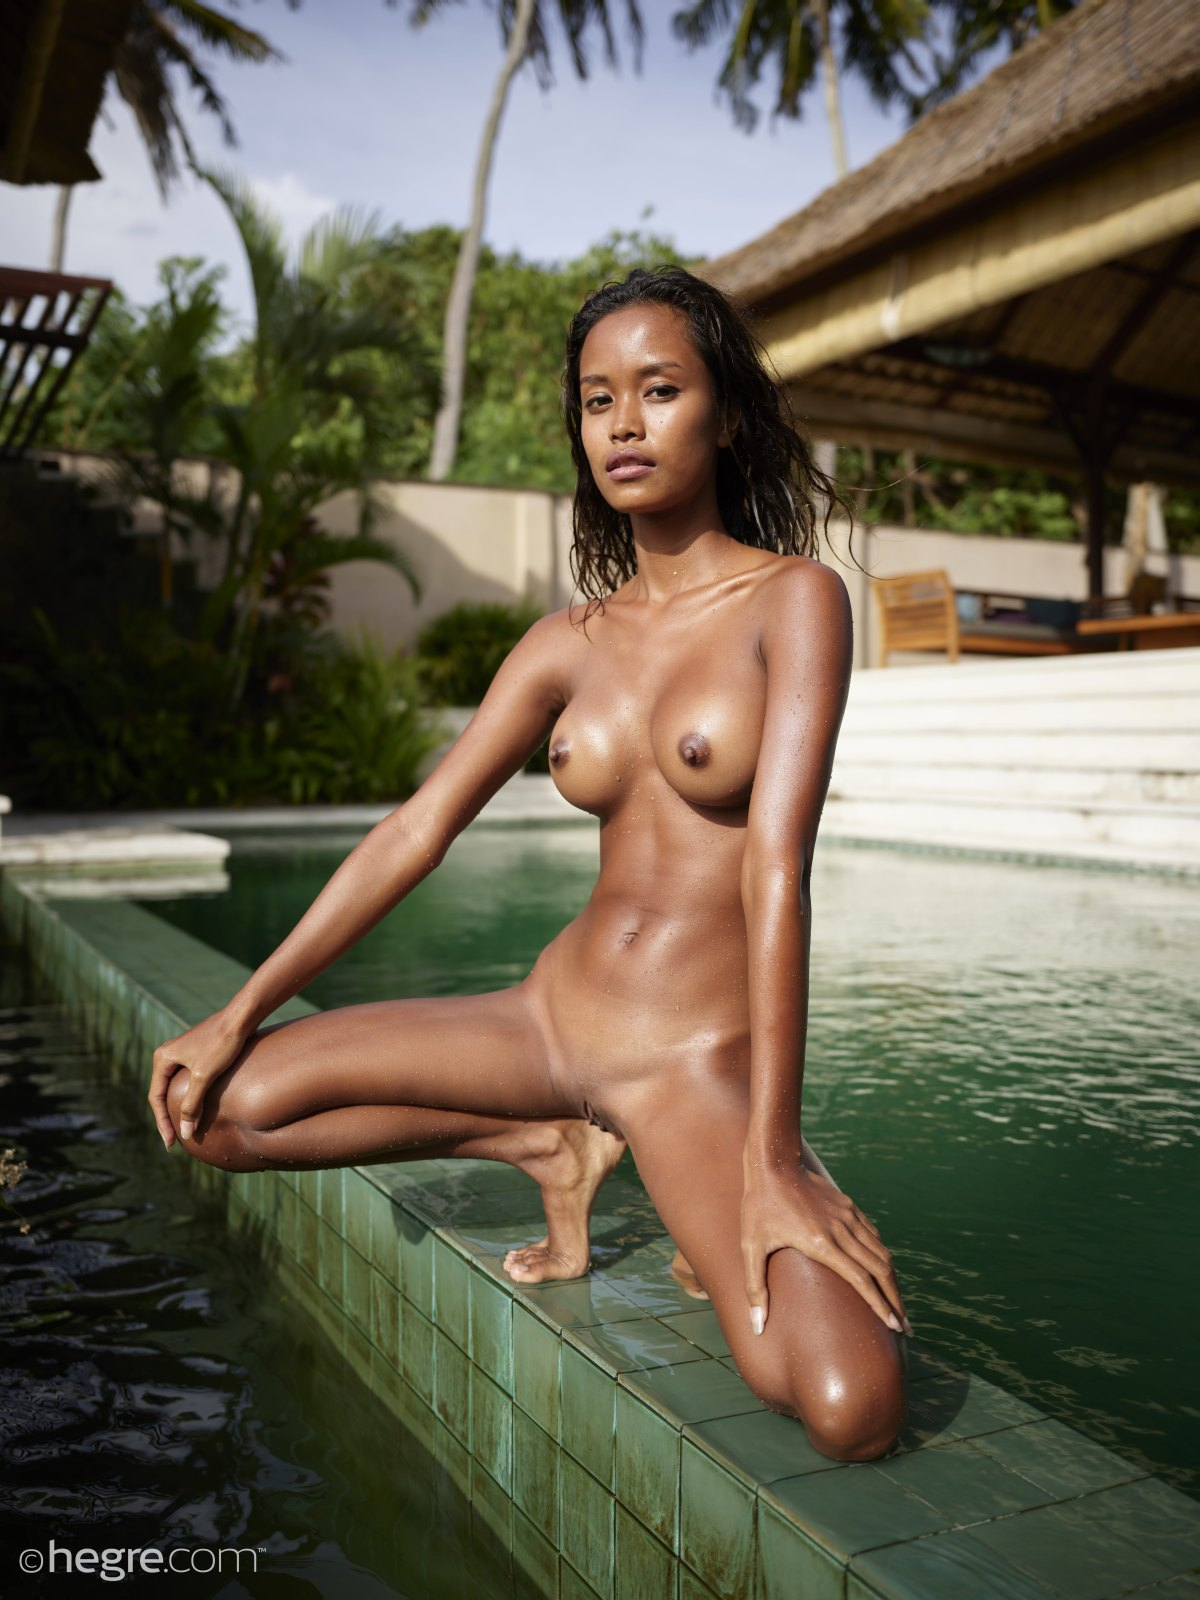 celebs that have posed for playboy